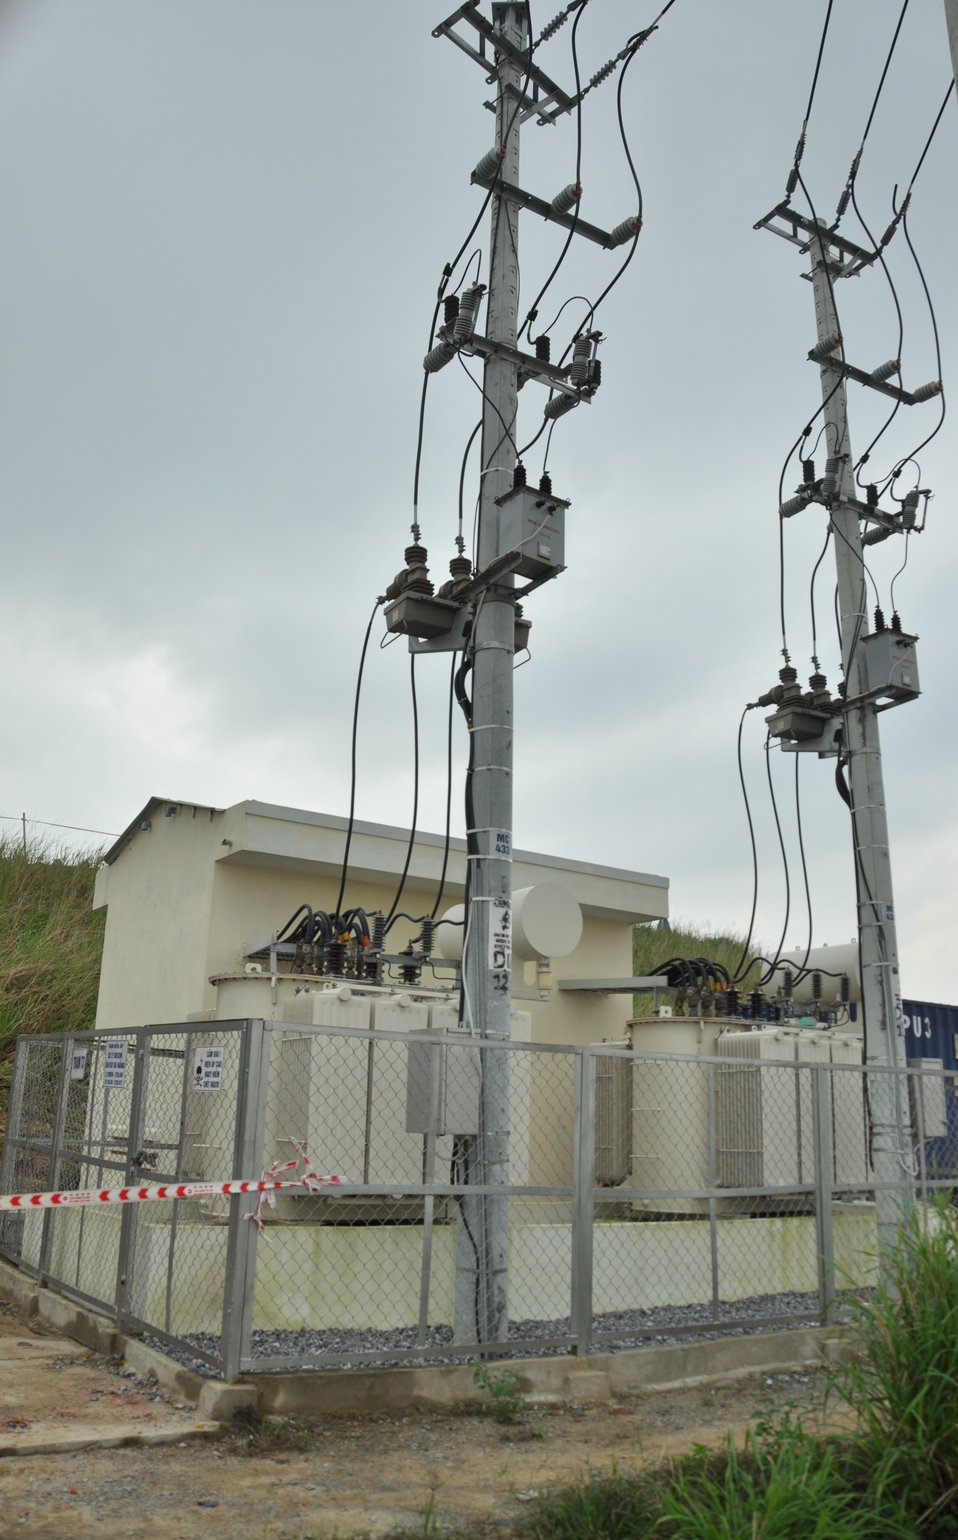 USAID Dioxin Contamination Project Progress: Electrical Power Station